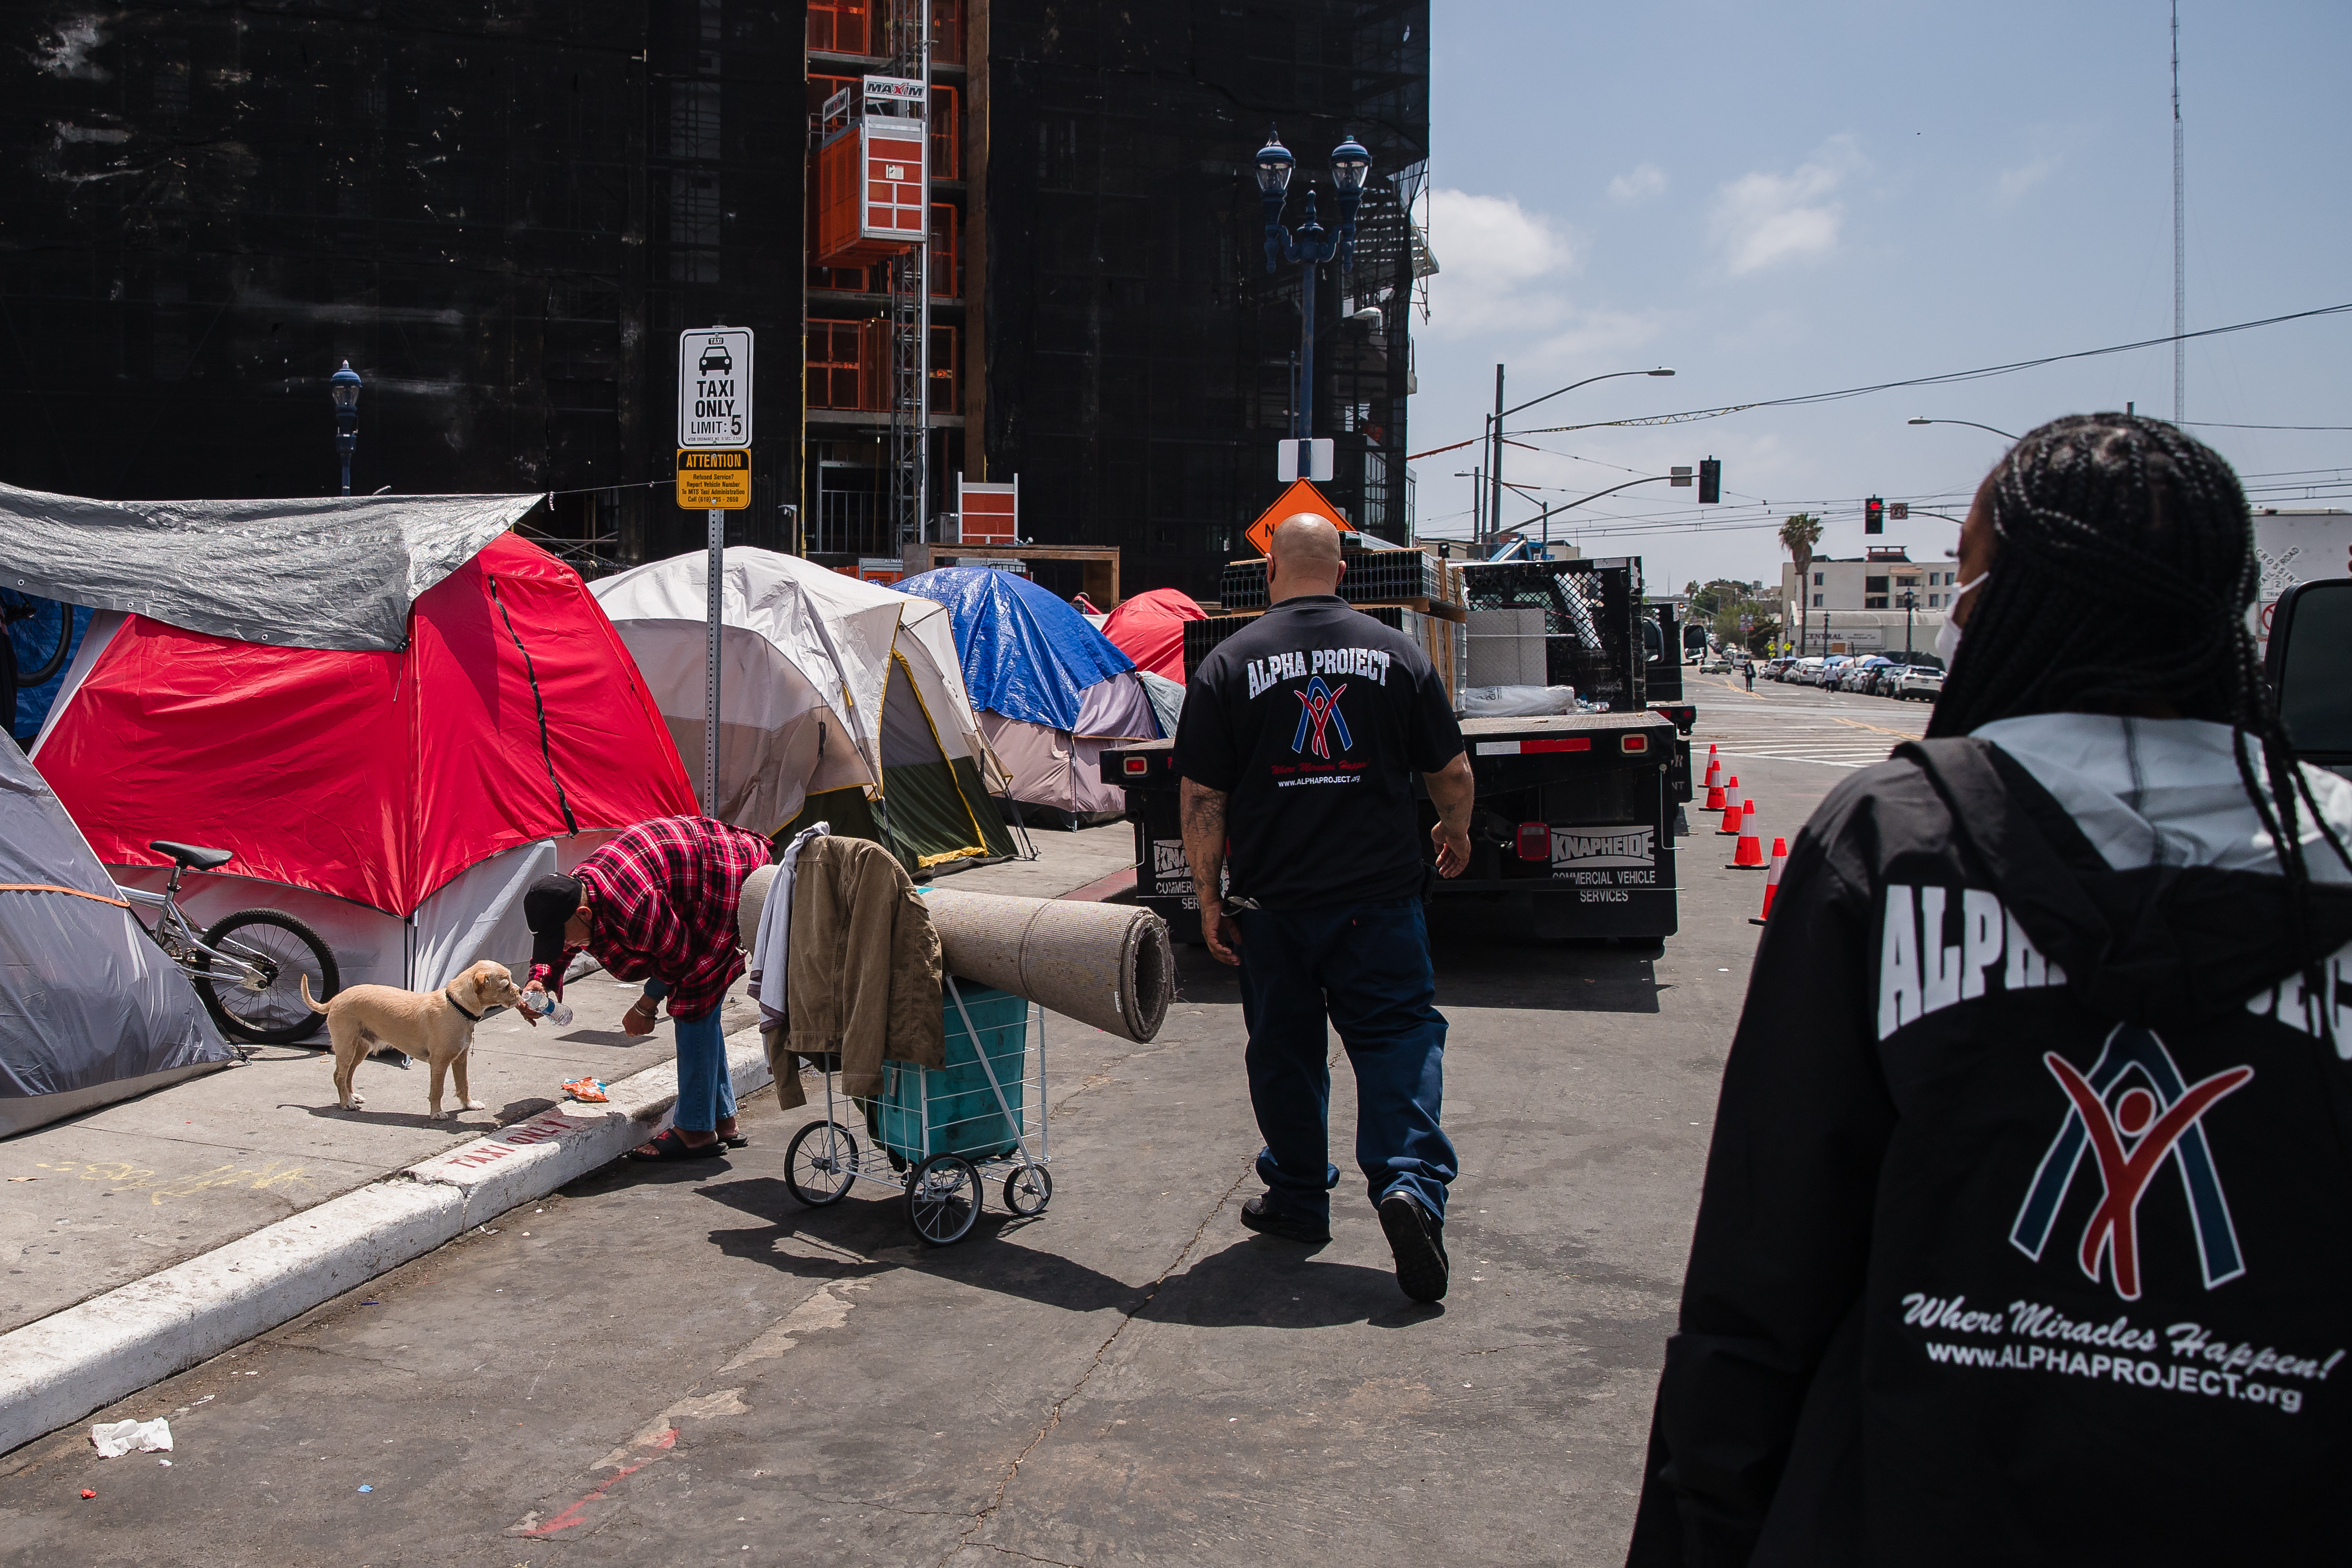 Why does it seem like there are more homeless on the streets?